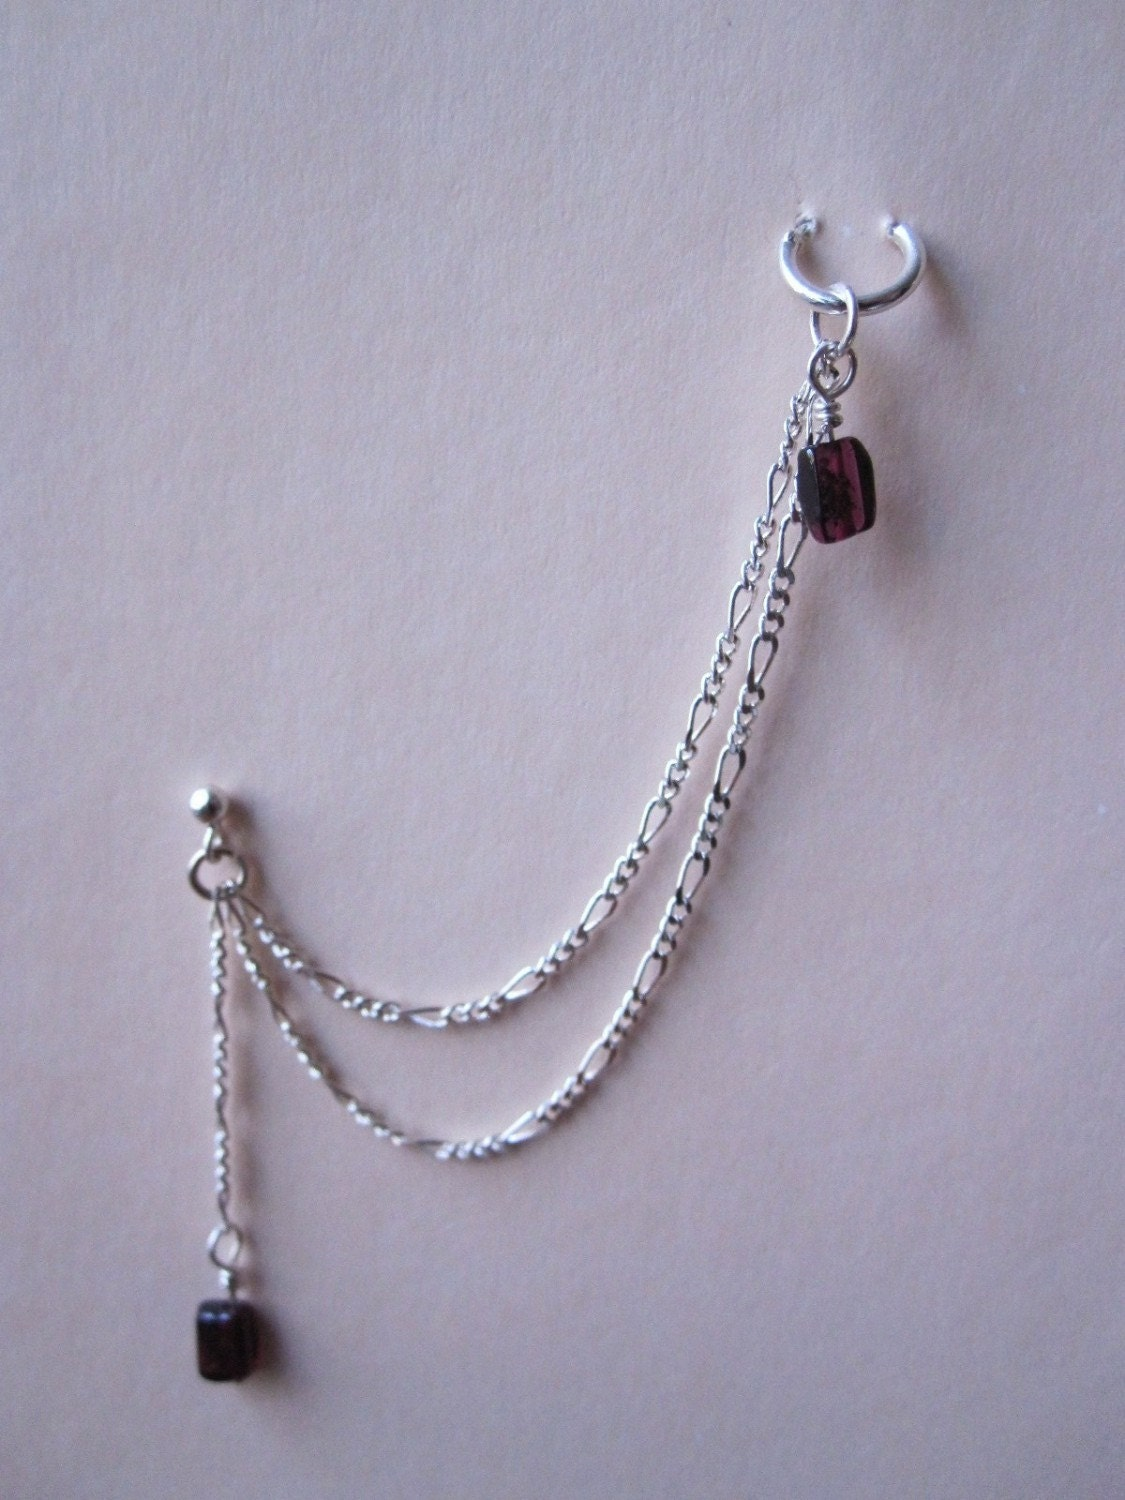 items similar to garnet cartilage chain earring on etsy